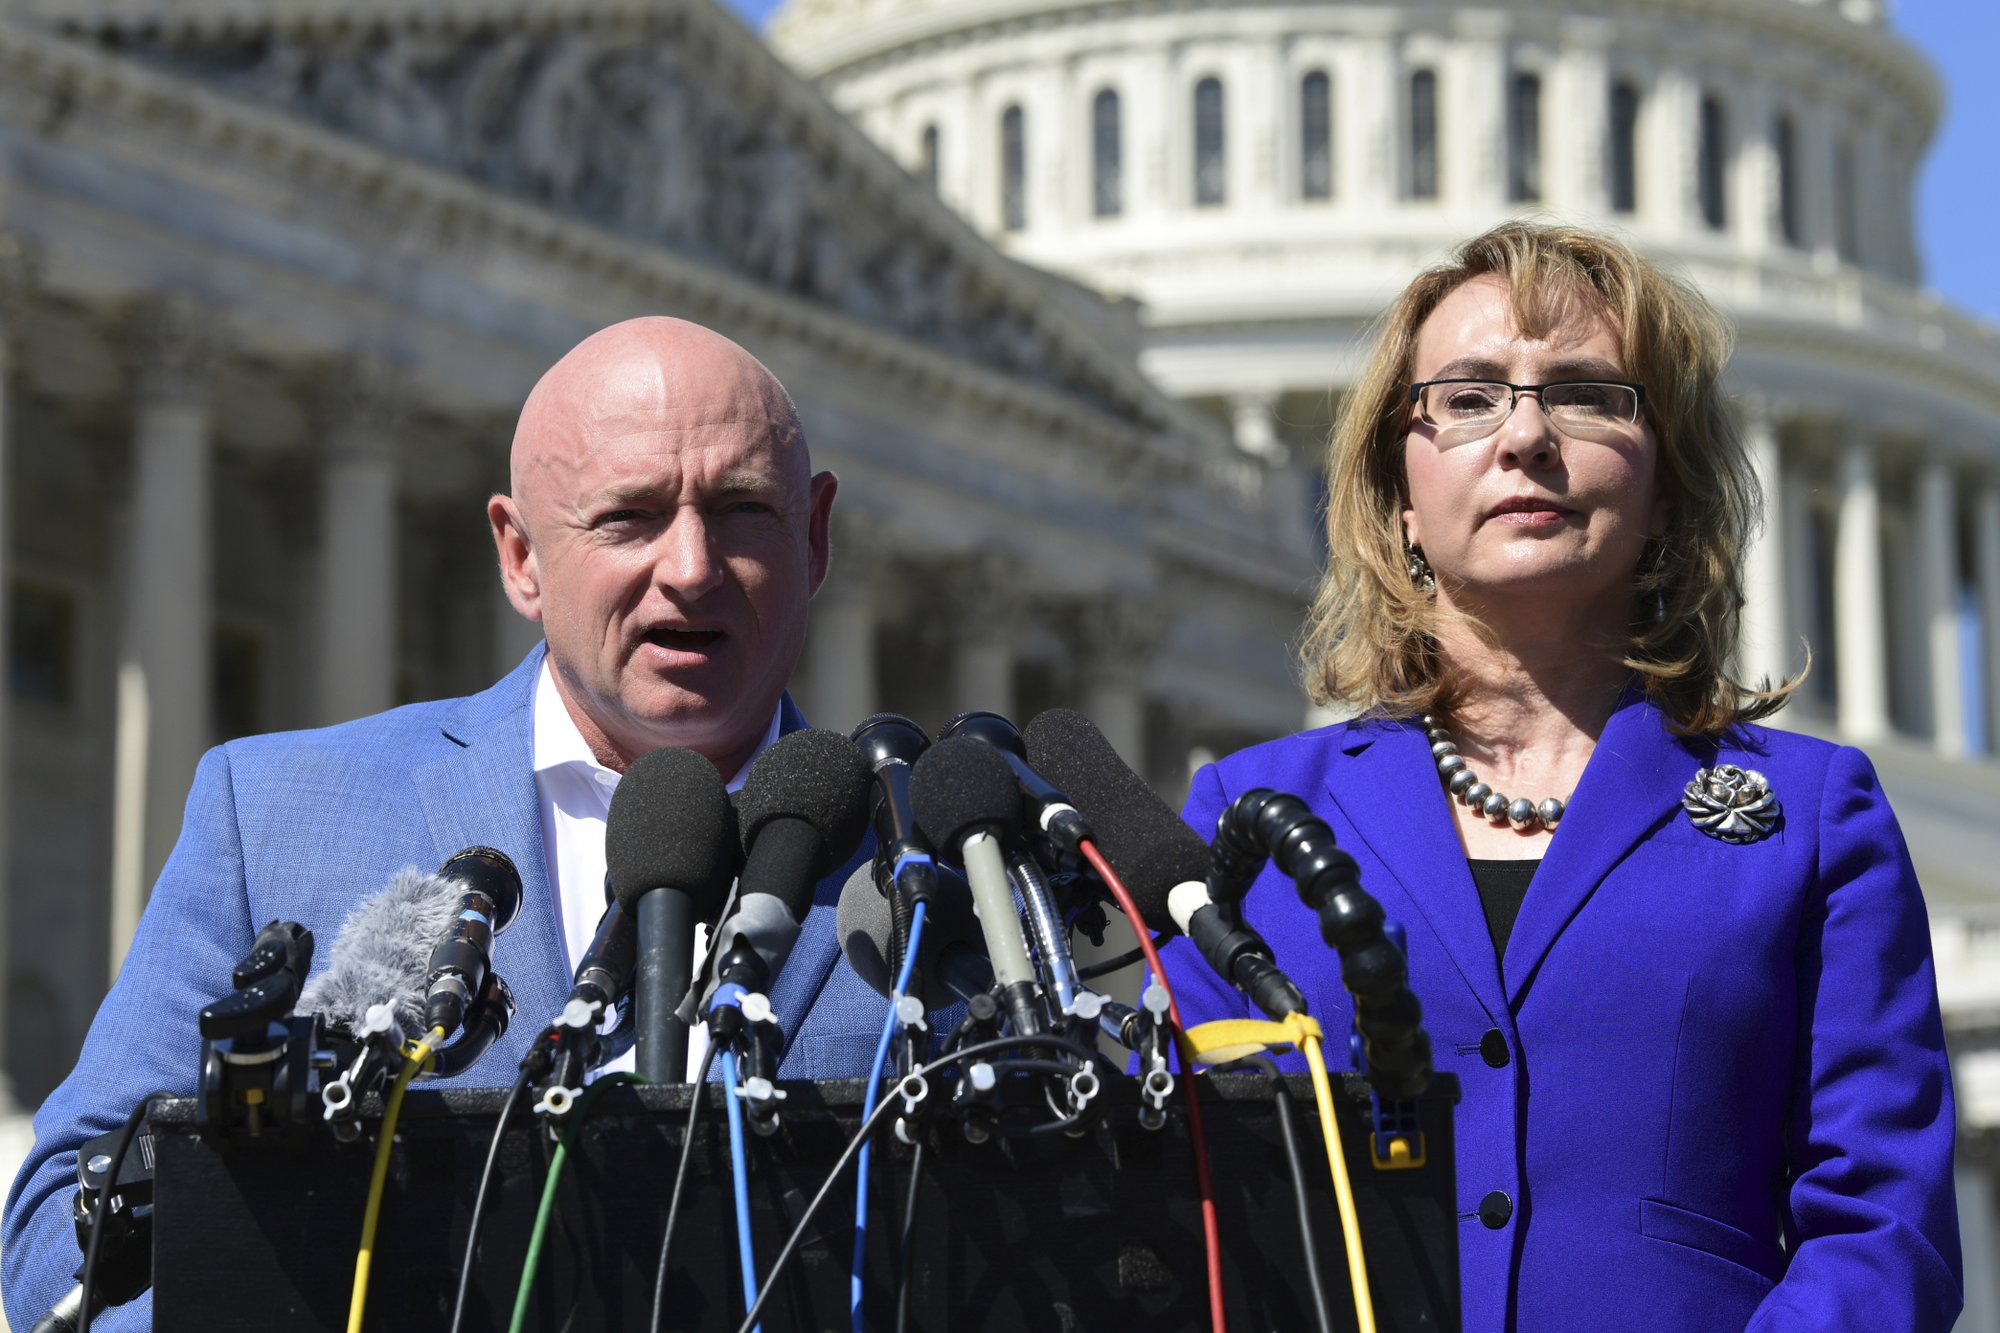 Retired astronaut Mark Kelly kicks off Arizona Senate bid